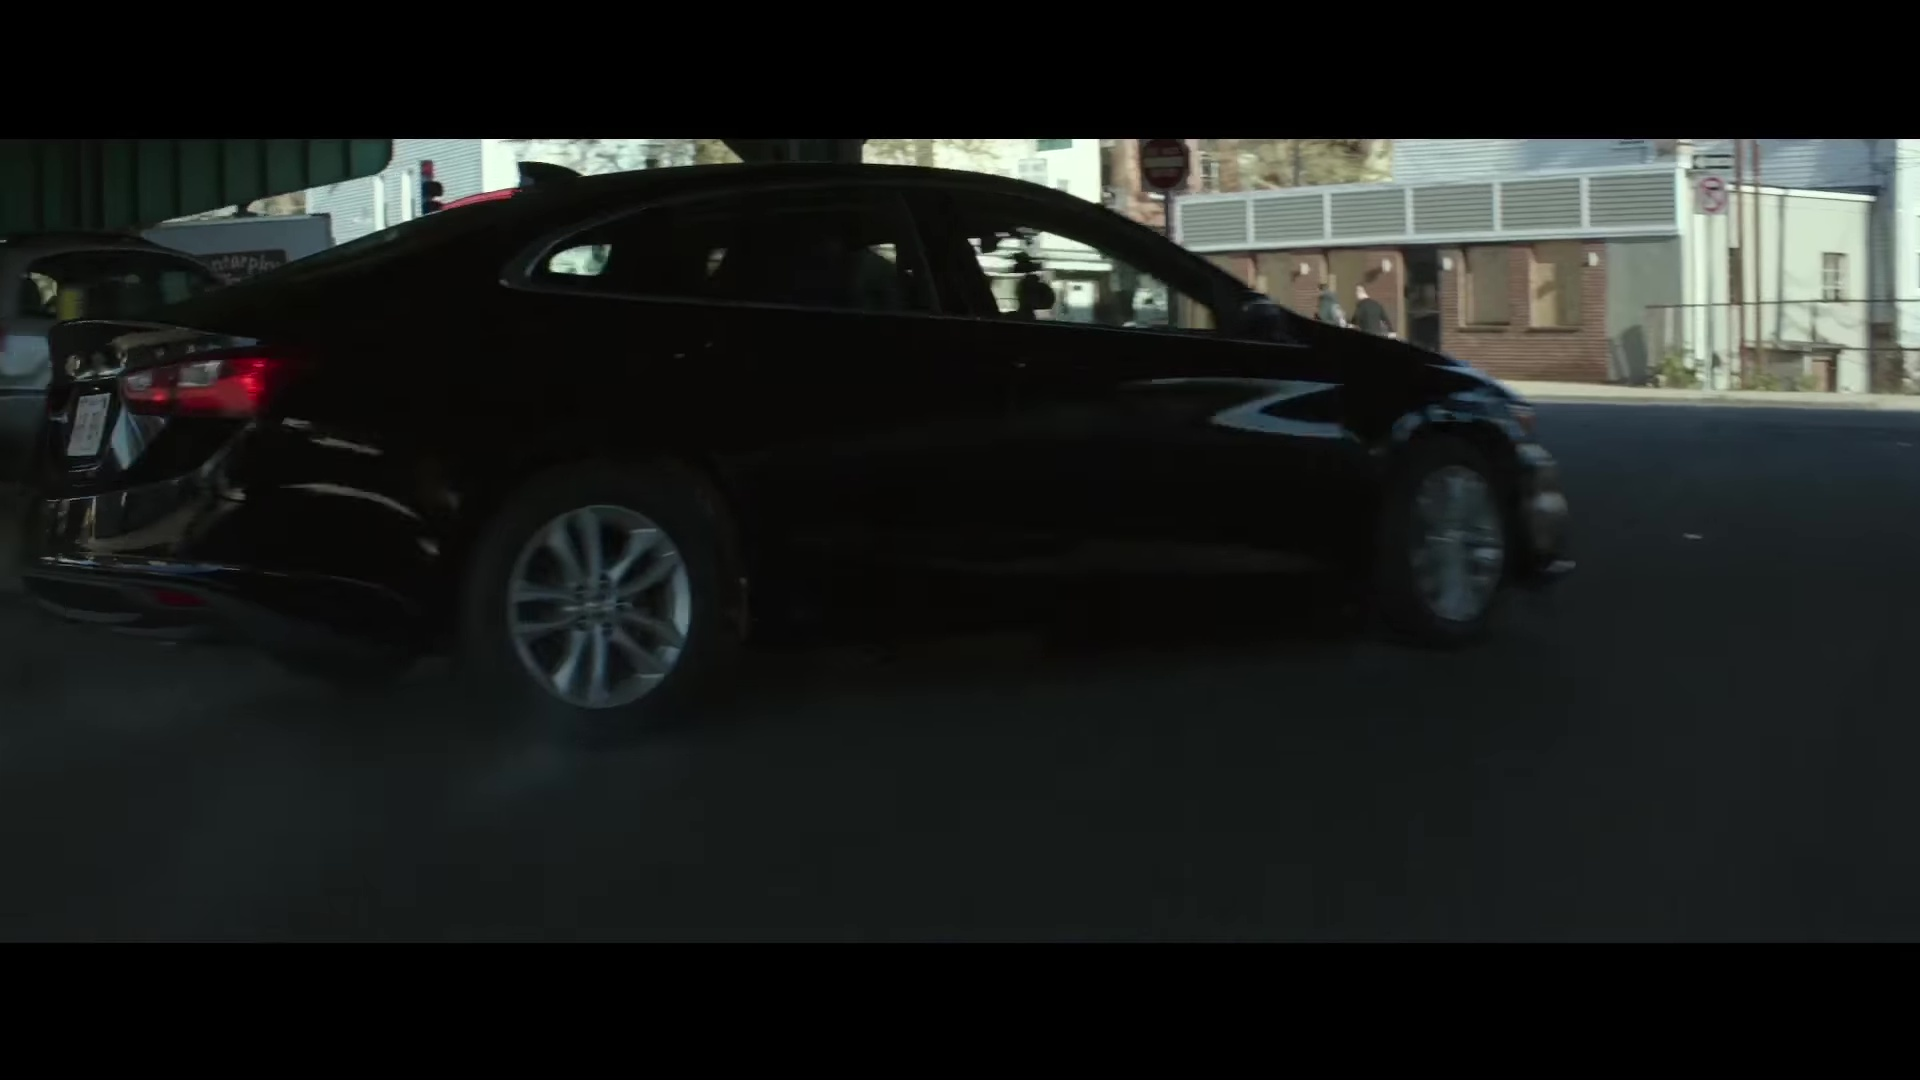 Chevrolet Malibu Car Driven By Denzel Washington In The